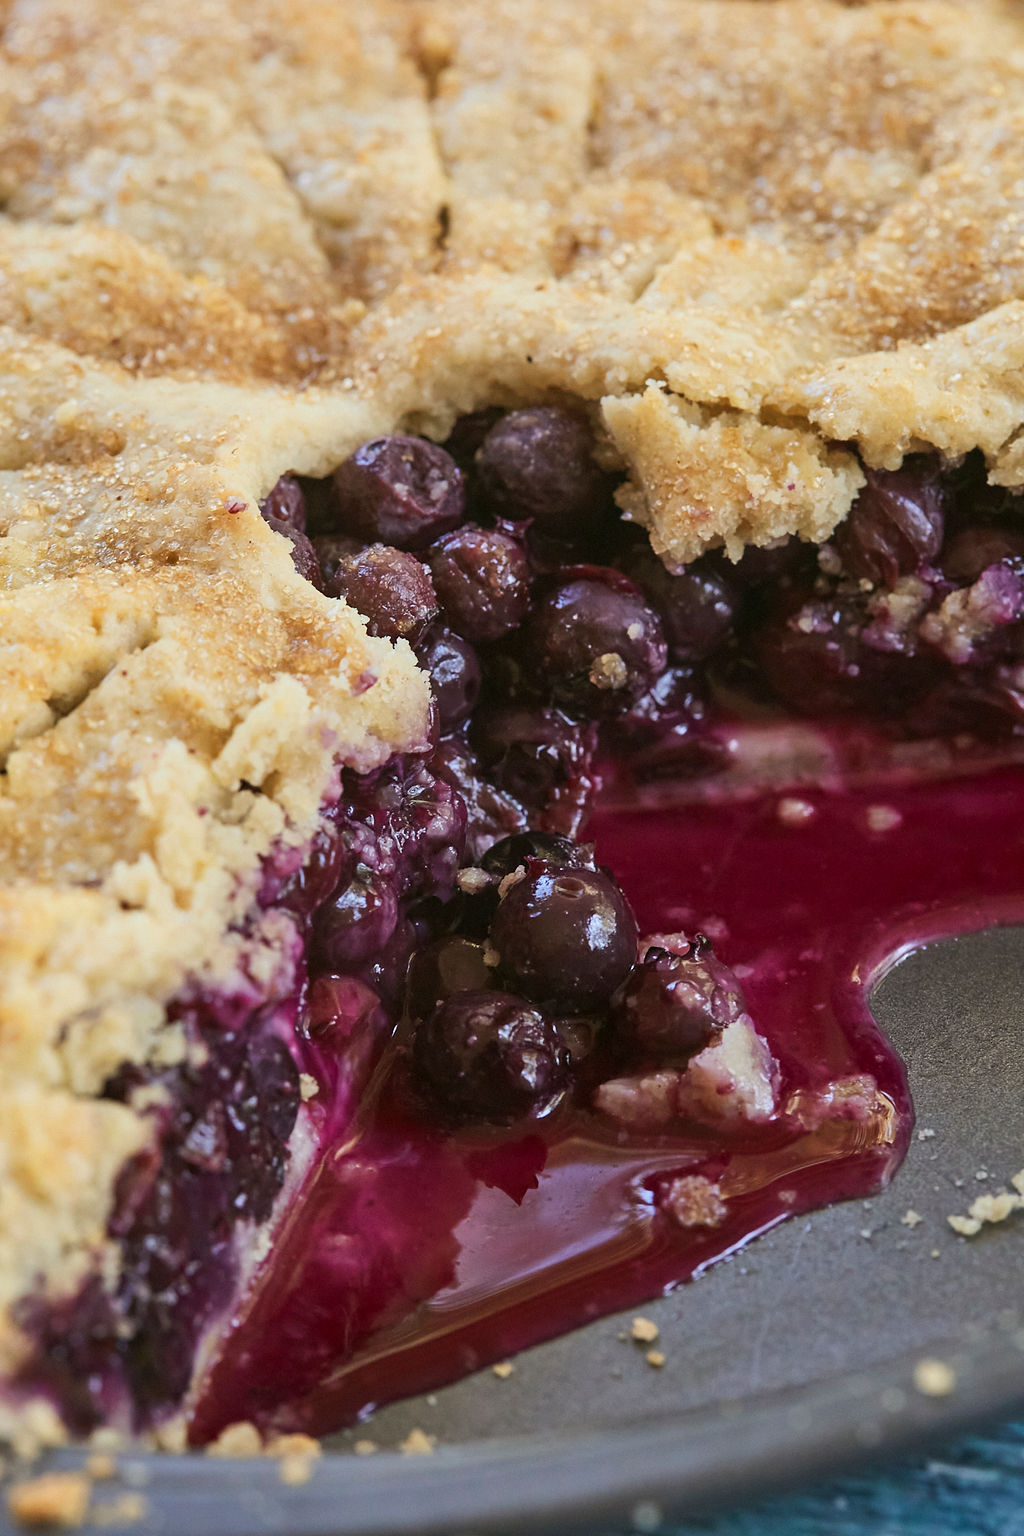 A close of of my Blueberry Pie recipe, showing the crust, blueberries, and juice.